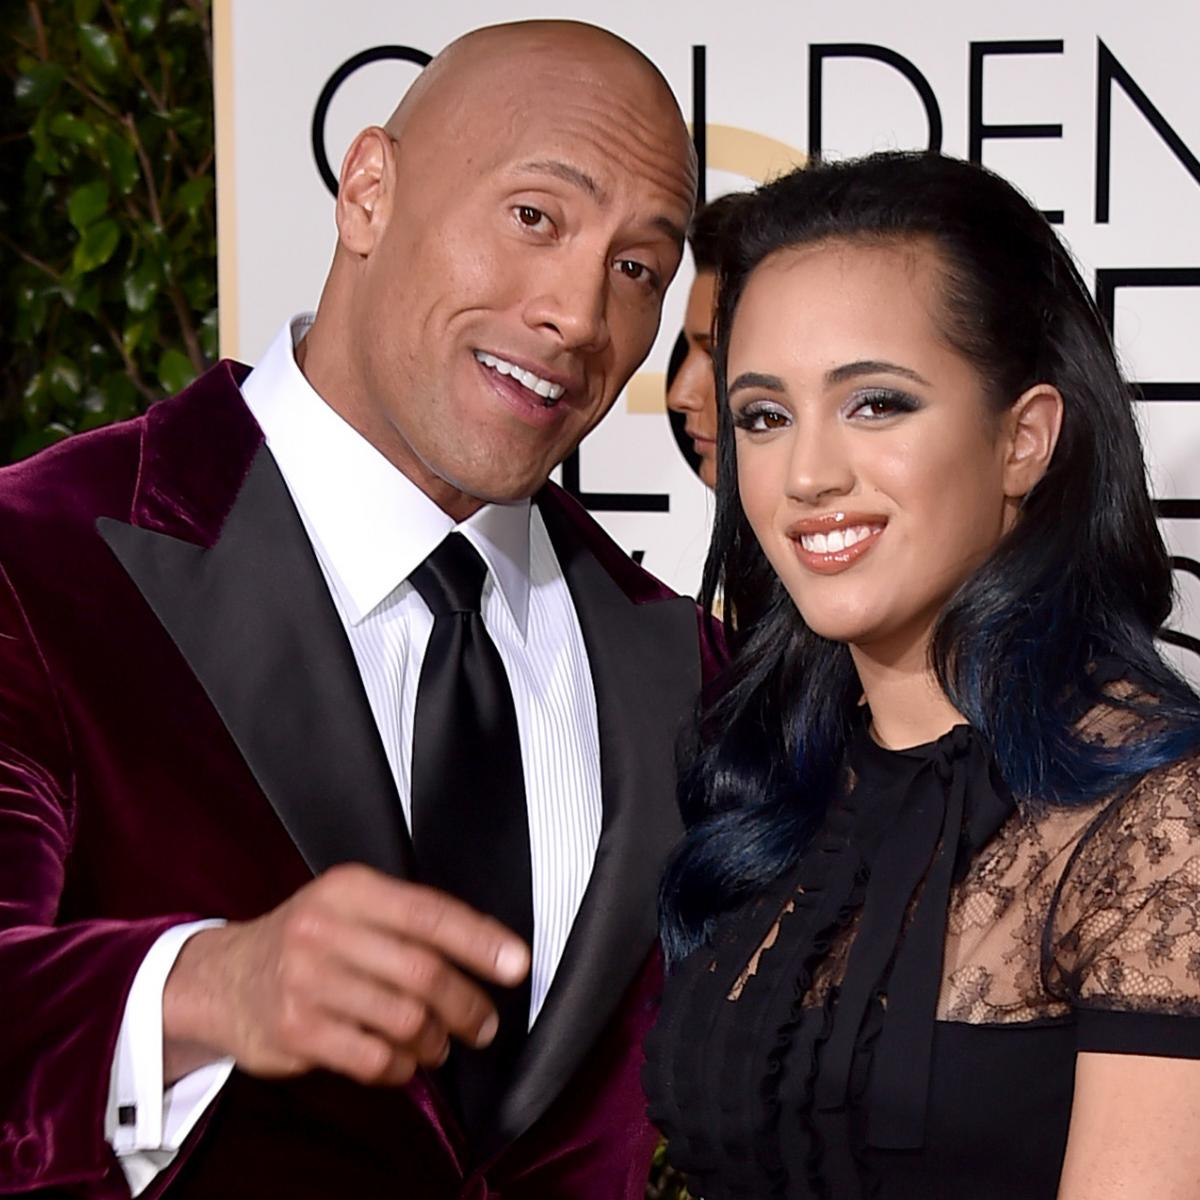 The Rock Says Daughter Simone Is 'Going to Be a Champ' in